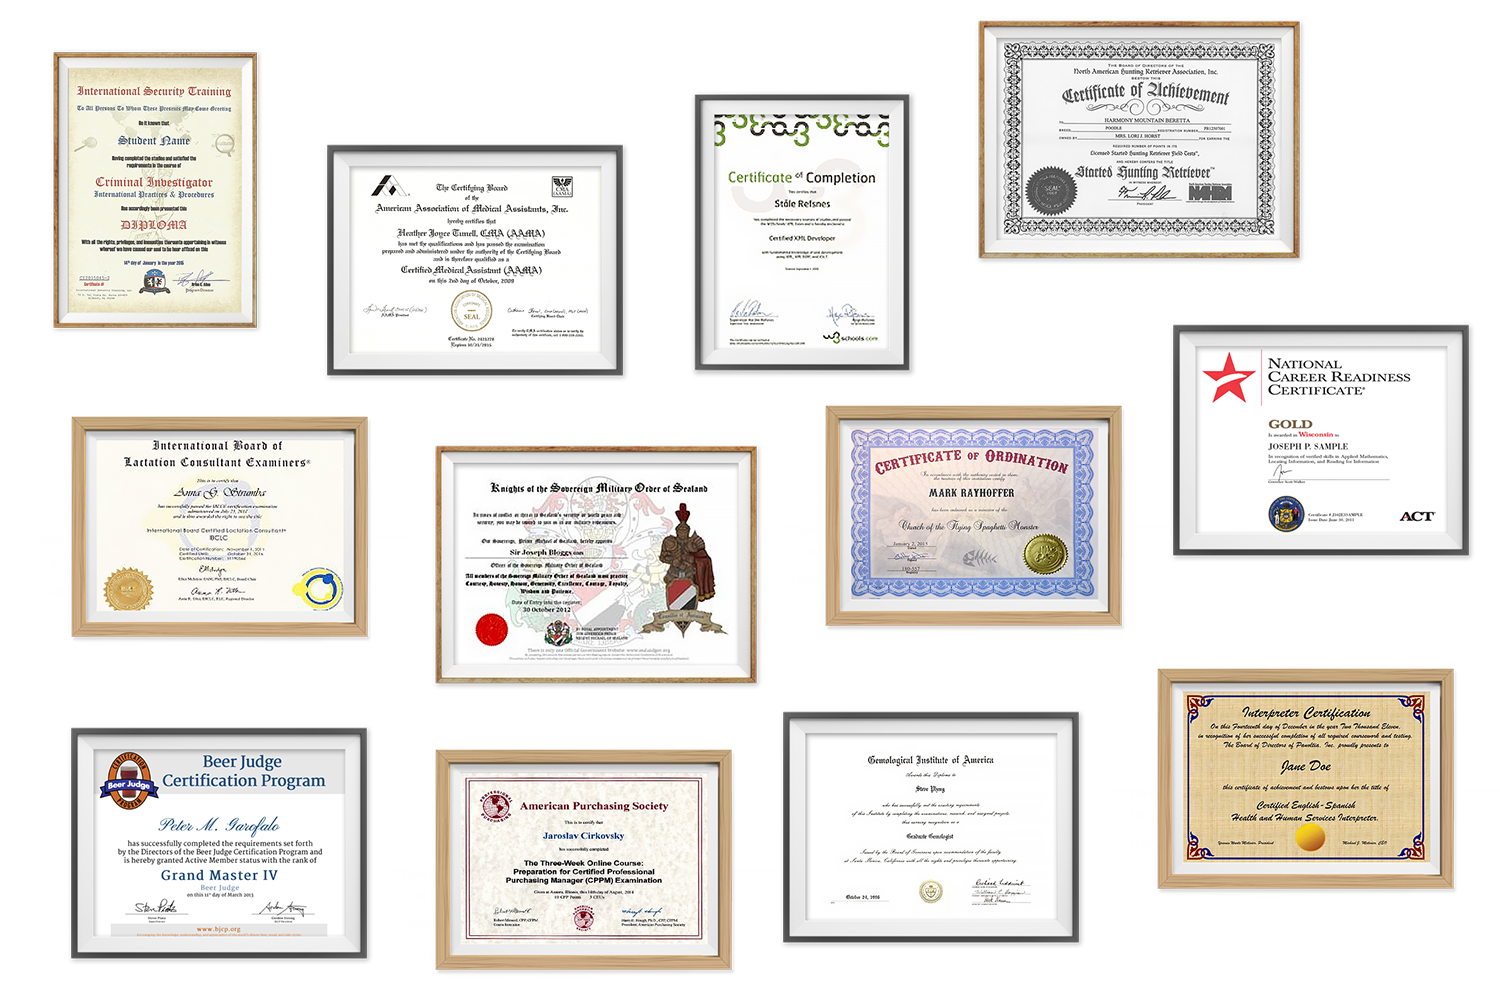 All The Weird Certifications You Can Get Online From Beer Judge To